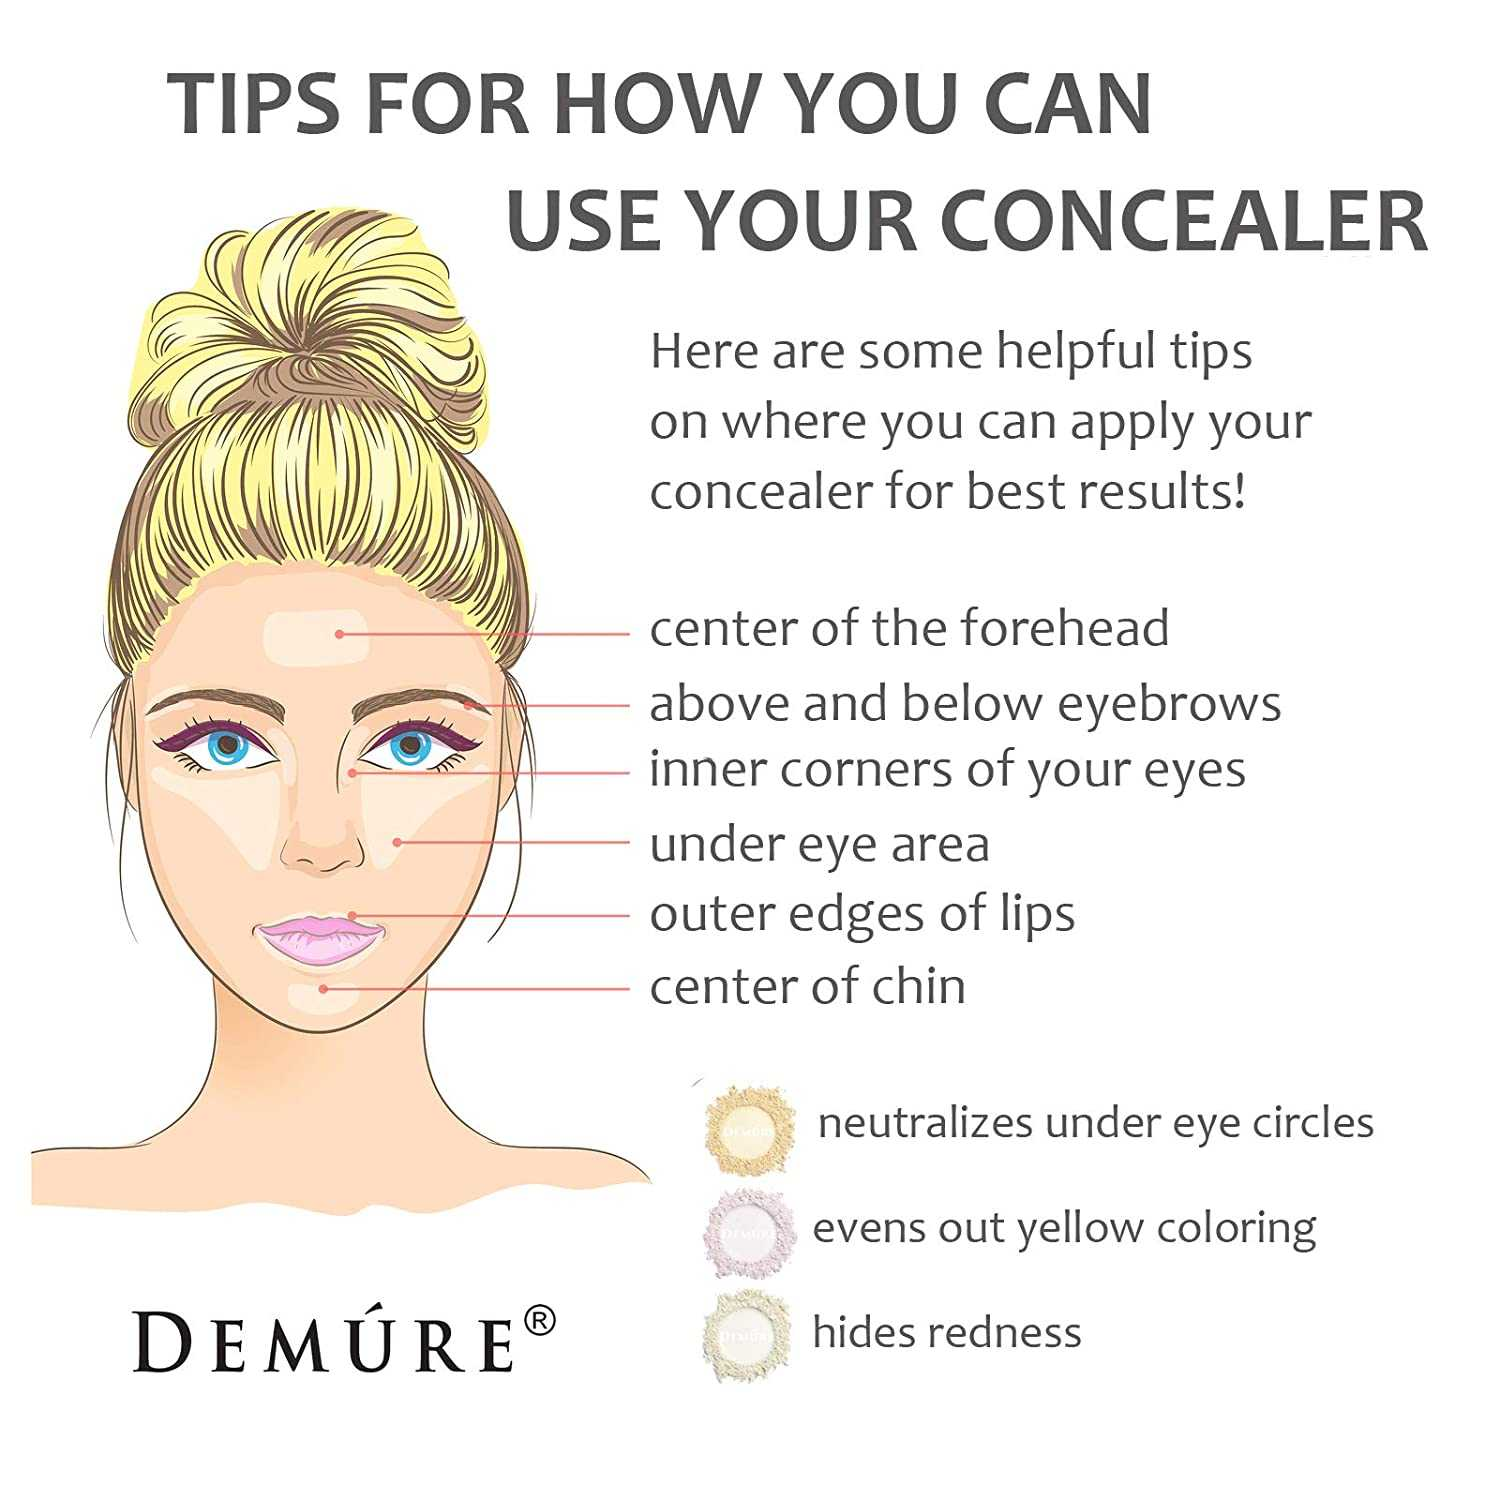 Tips For How You Can Use Your Concealer